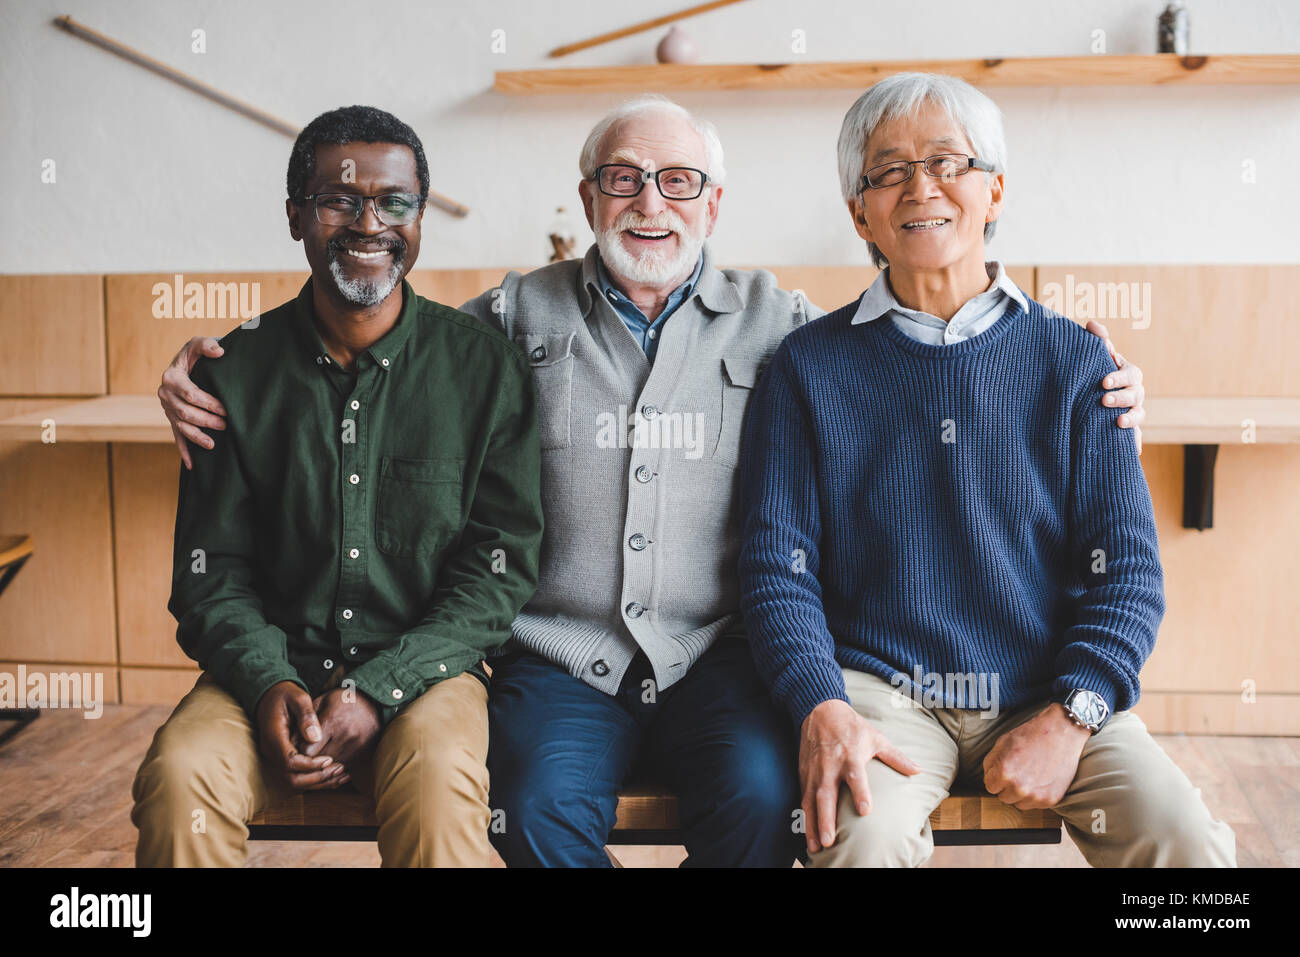 embracing senior friends - Stock Image